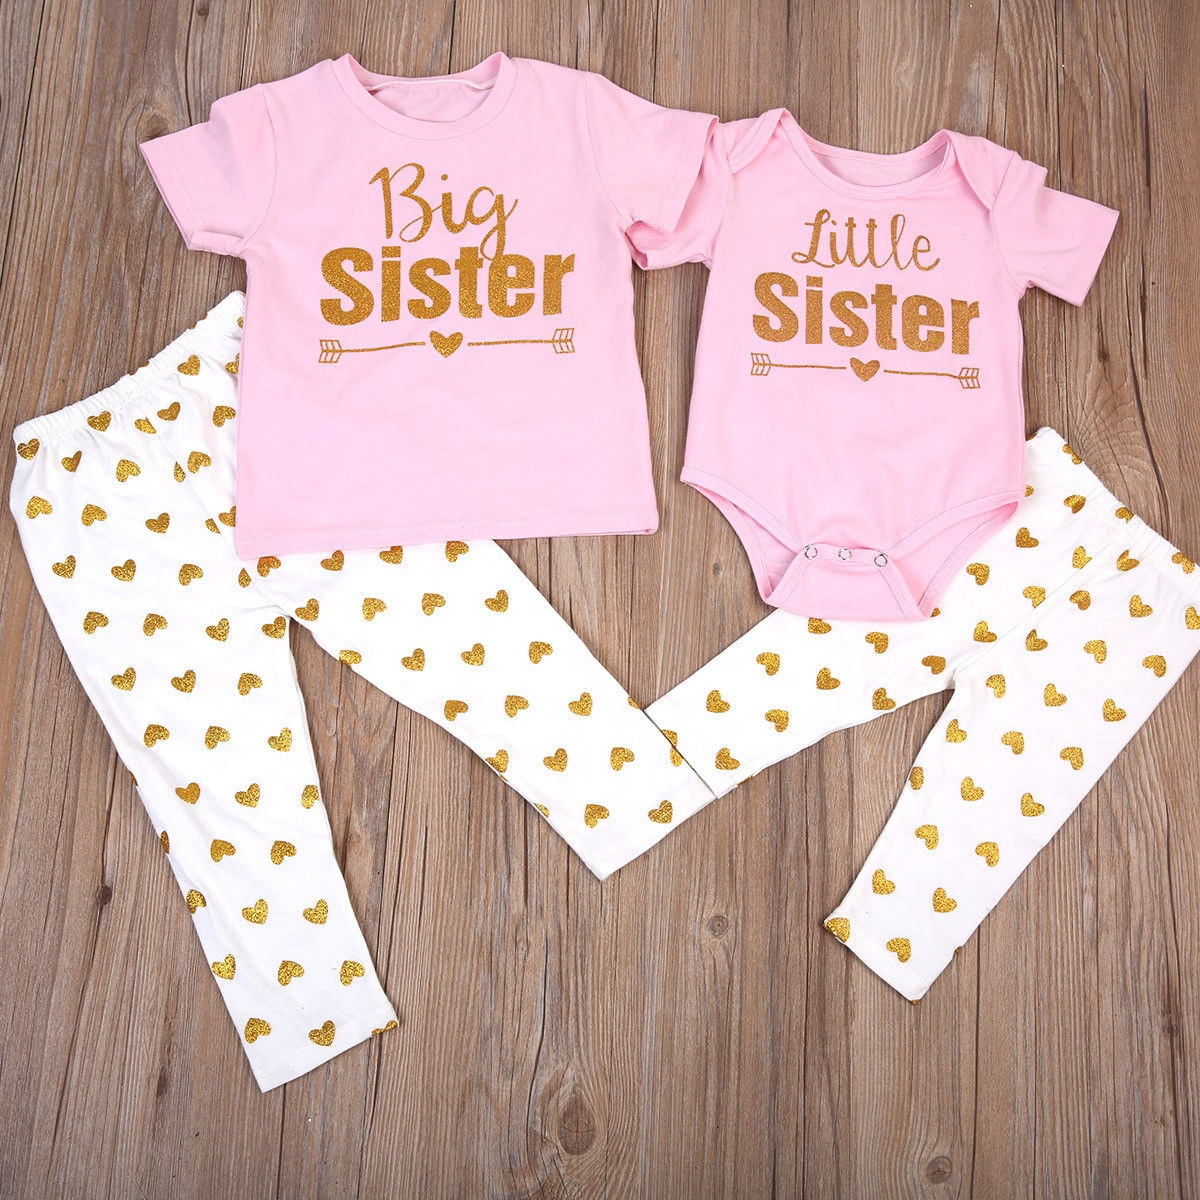 Newborn Baby Little Sister Romper Big Sister T-shirt+Long Pants Clothes Outfits